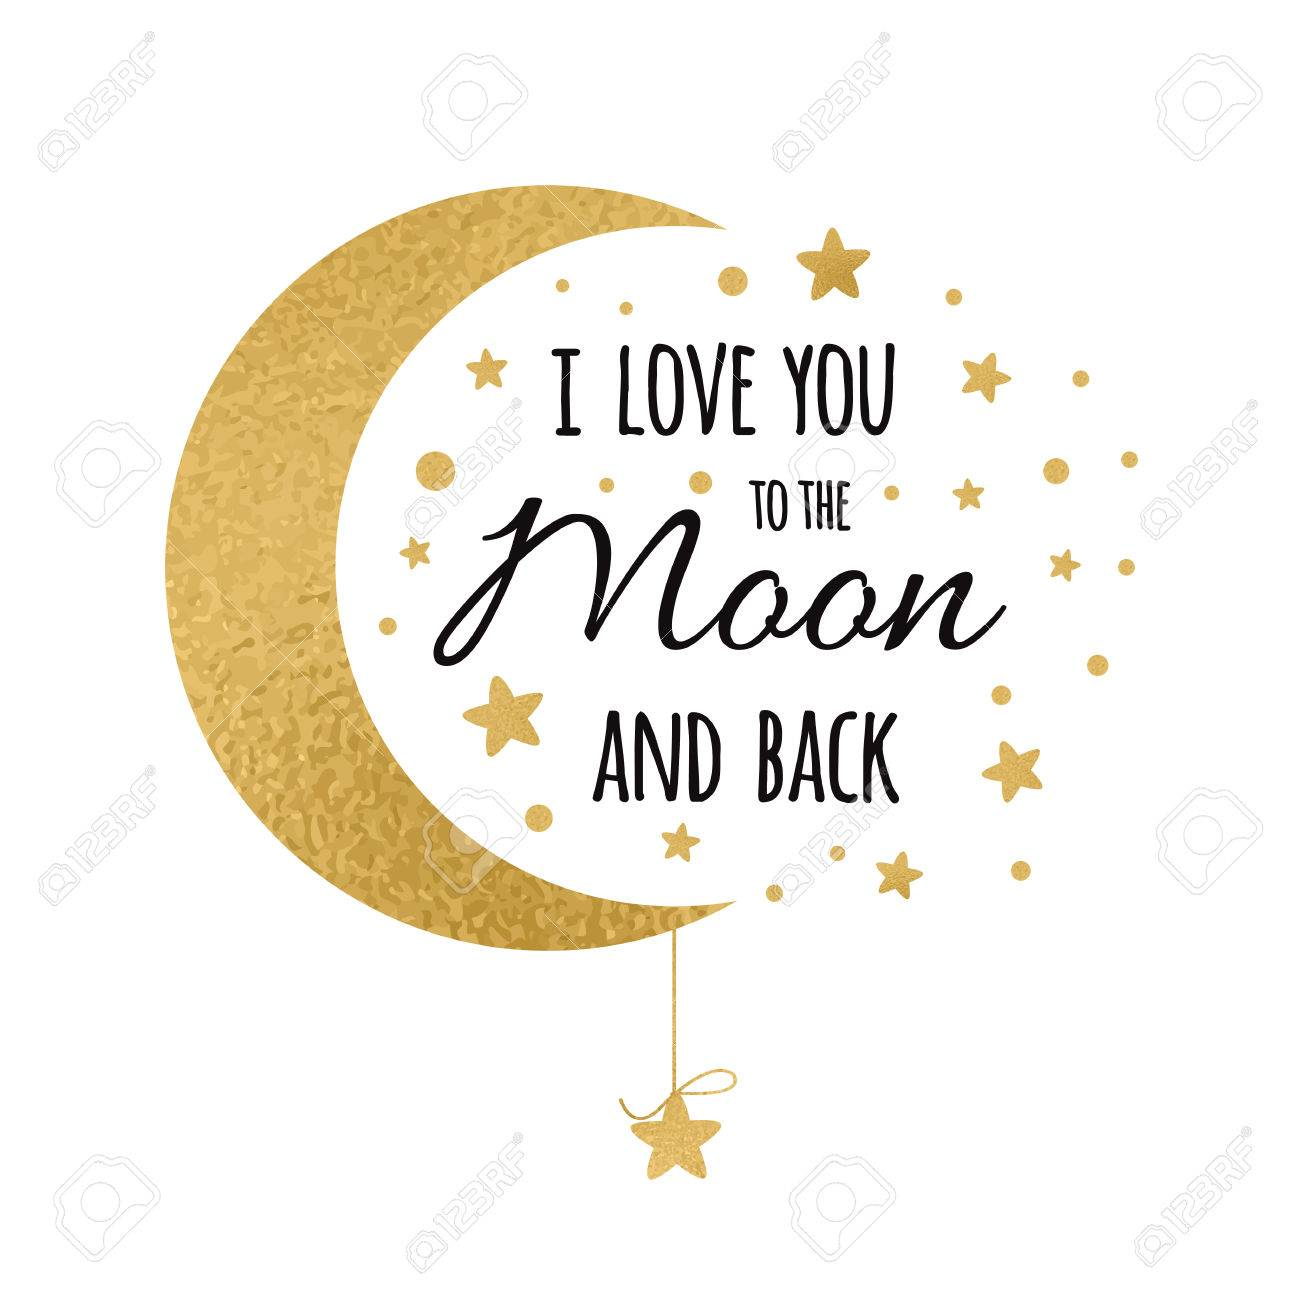 I love you to the moon and back. Handwritten inspirational phrase for your design with gold stars - 72581172